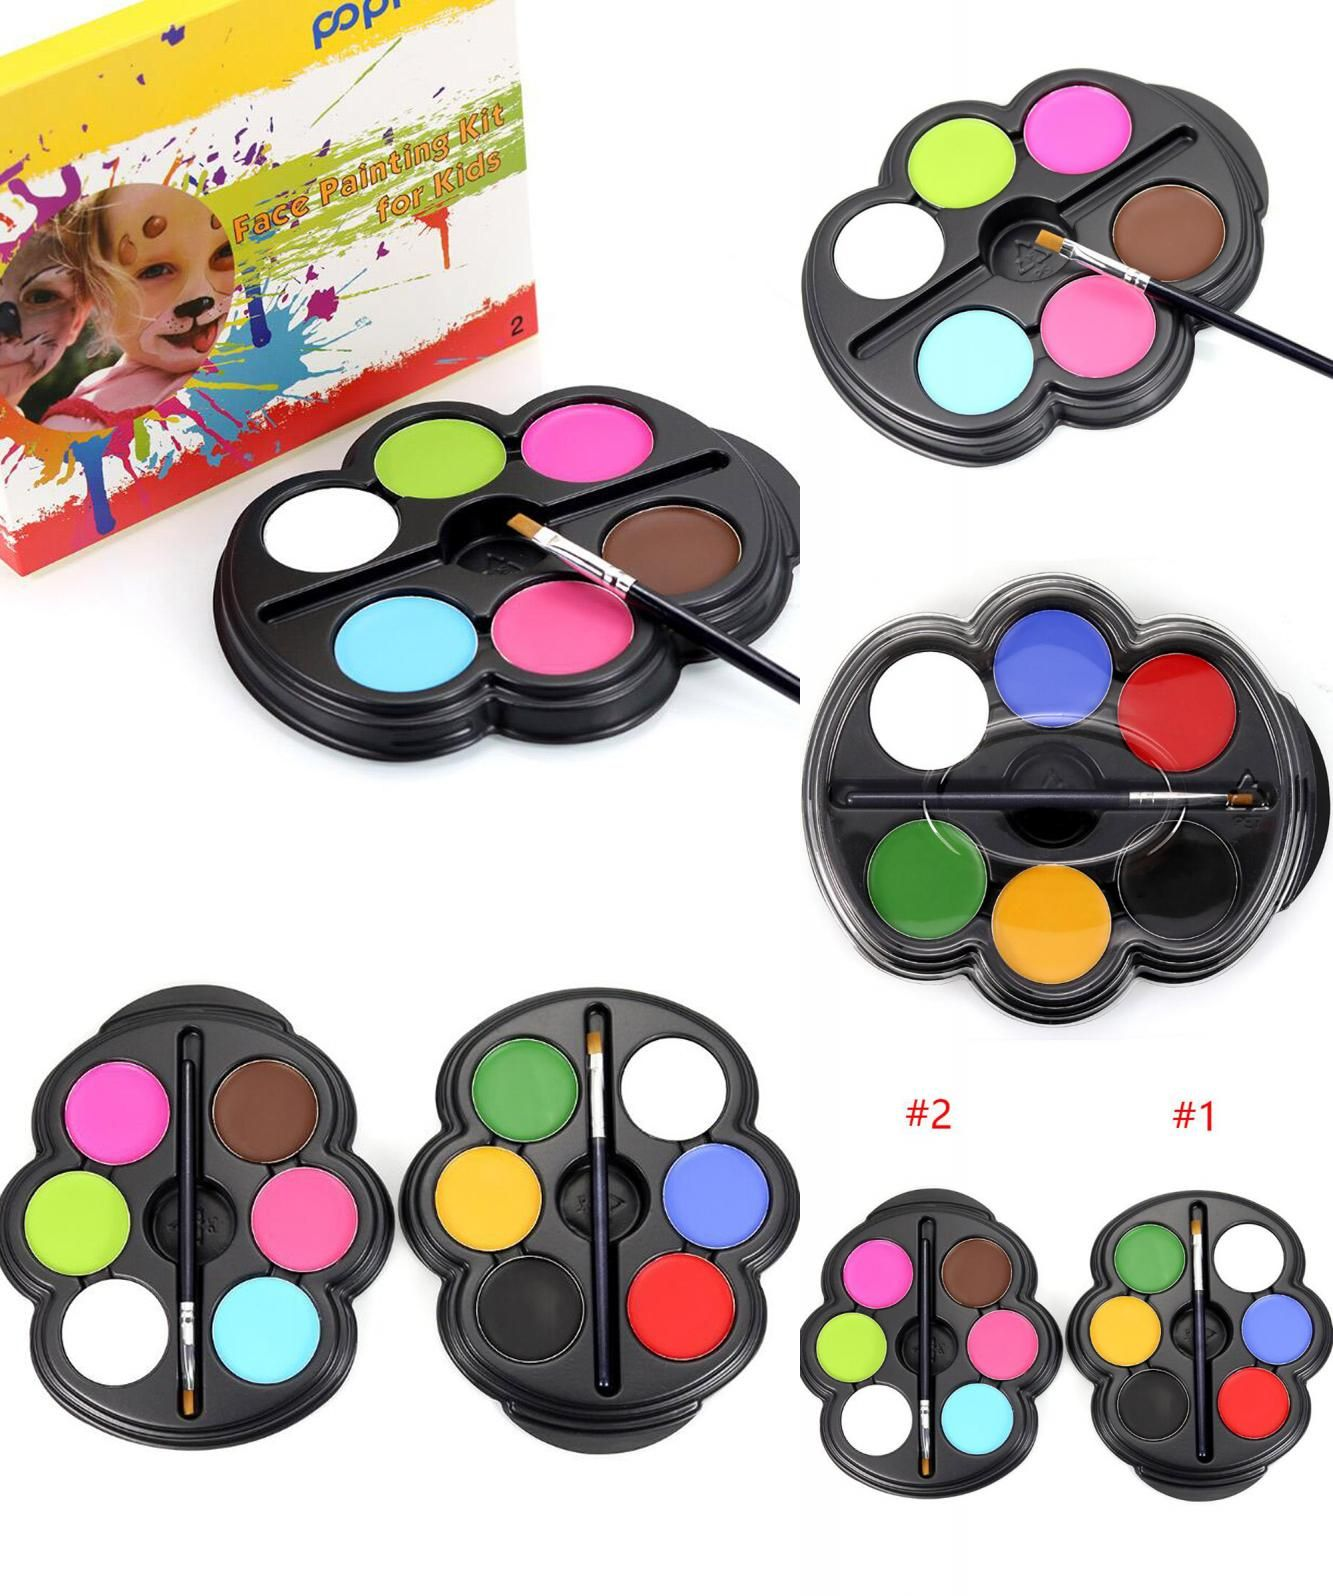 Visit to Buy] 6 Colors Face Paint Halloween Makeup Non-toxic Water ...